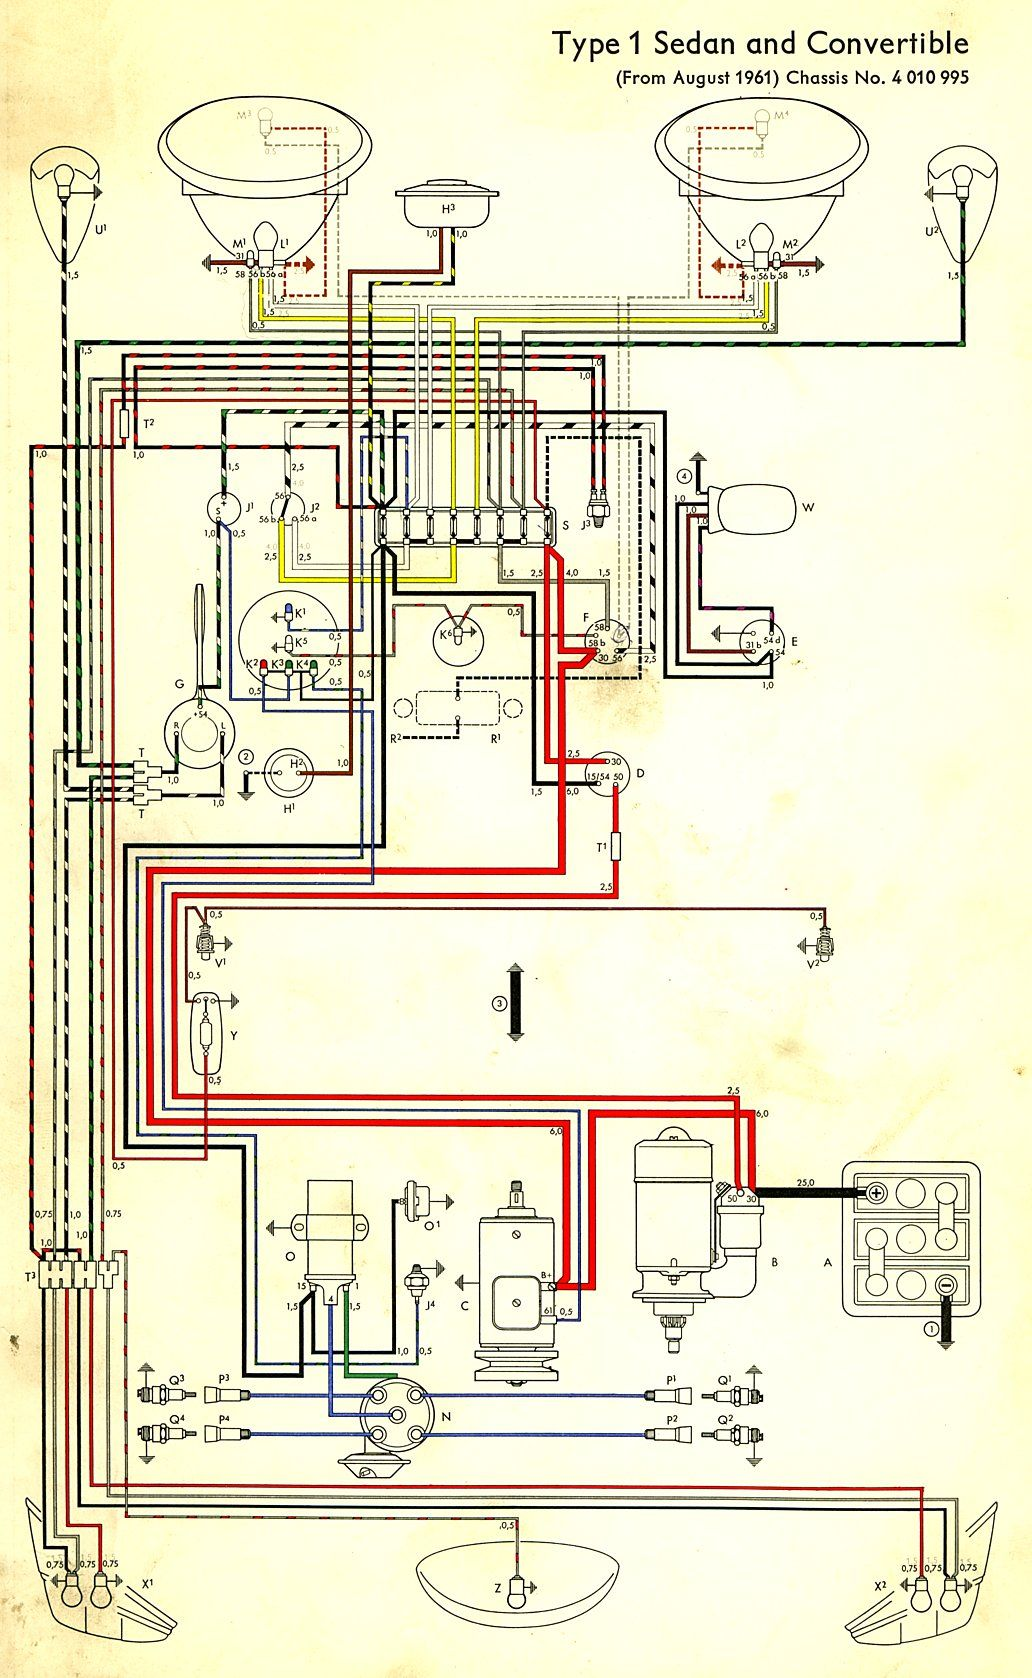 hight resolution of 1966 vw beetle wiring harness wiring diagram inside 1974 vw bug wiring 1966 vw bug wiring